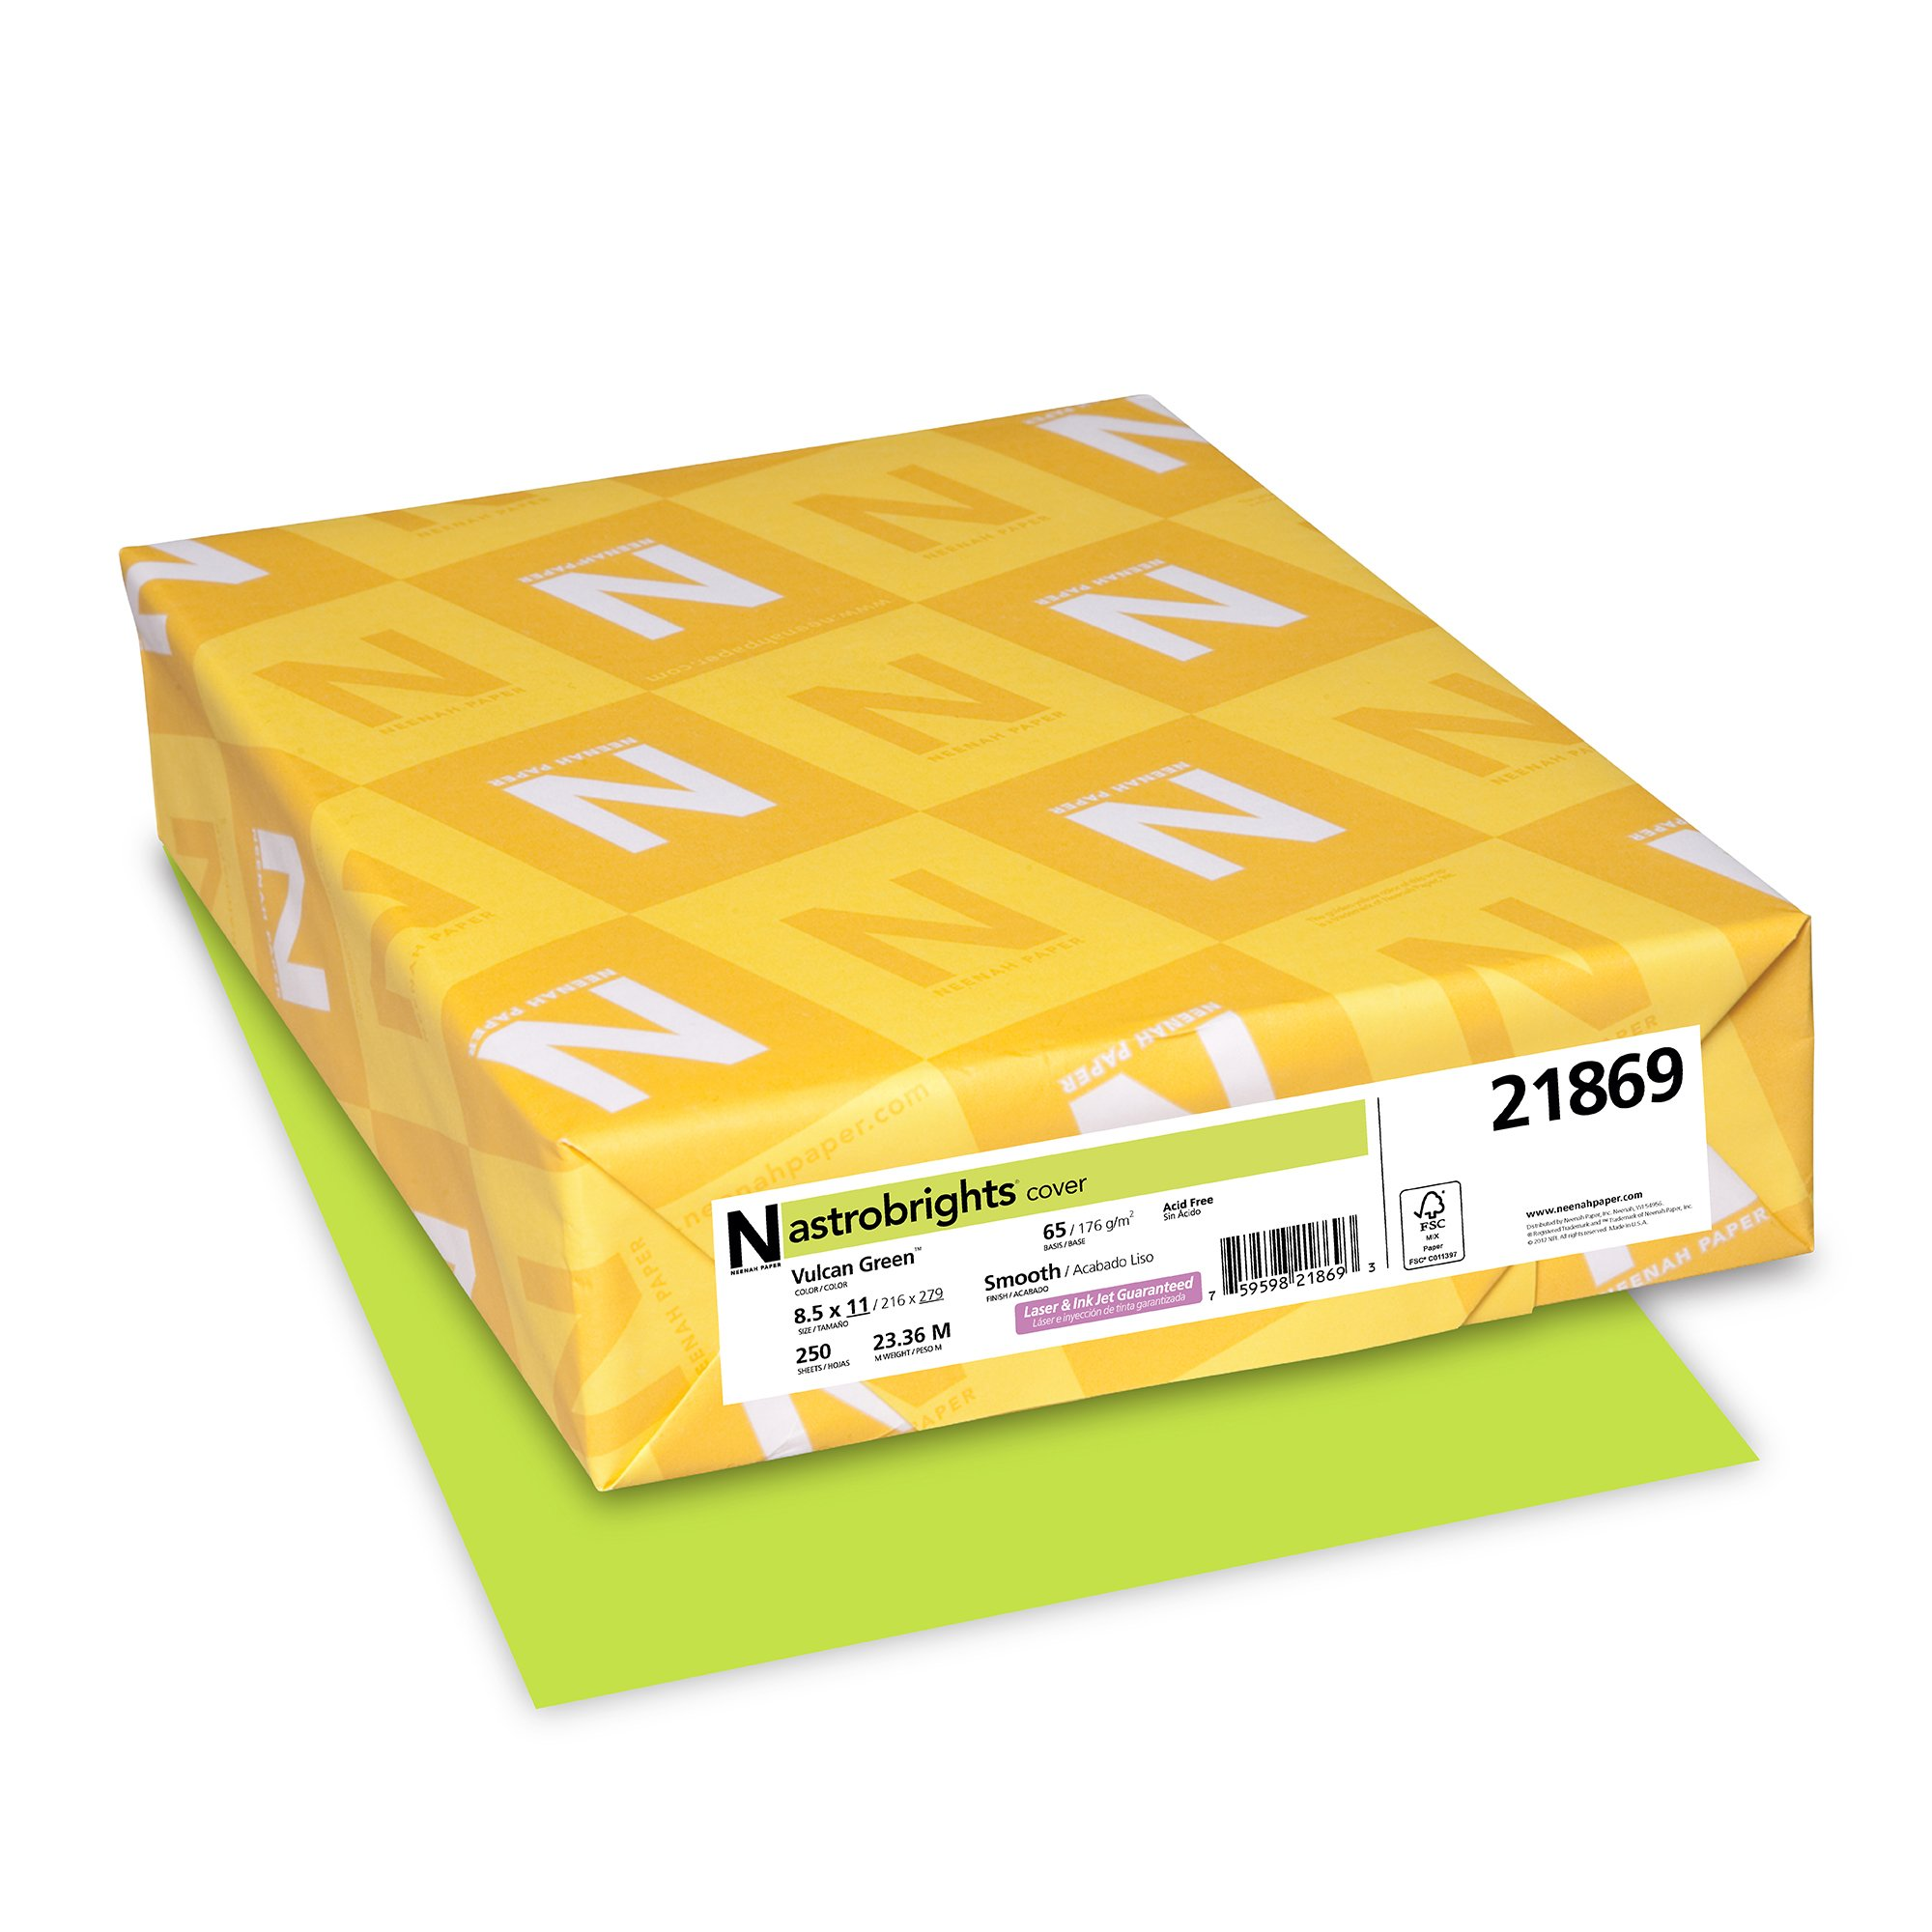 "Neenah Wausau 21869 Astrobrights Colored Cardstock, 8.5"" x 11"", 65 lb / 176 GSM, Vulcan Green, 250 Sheets"